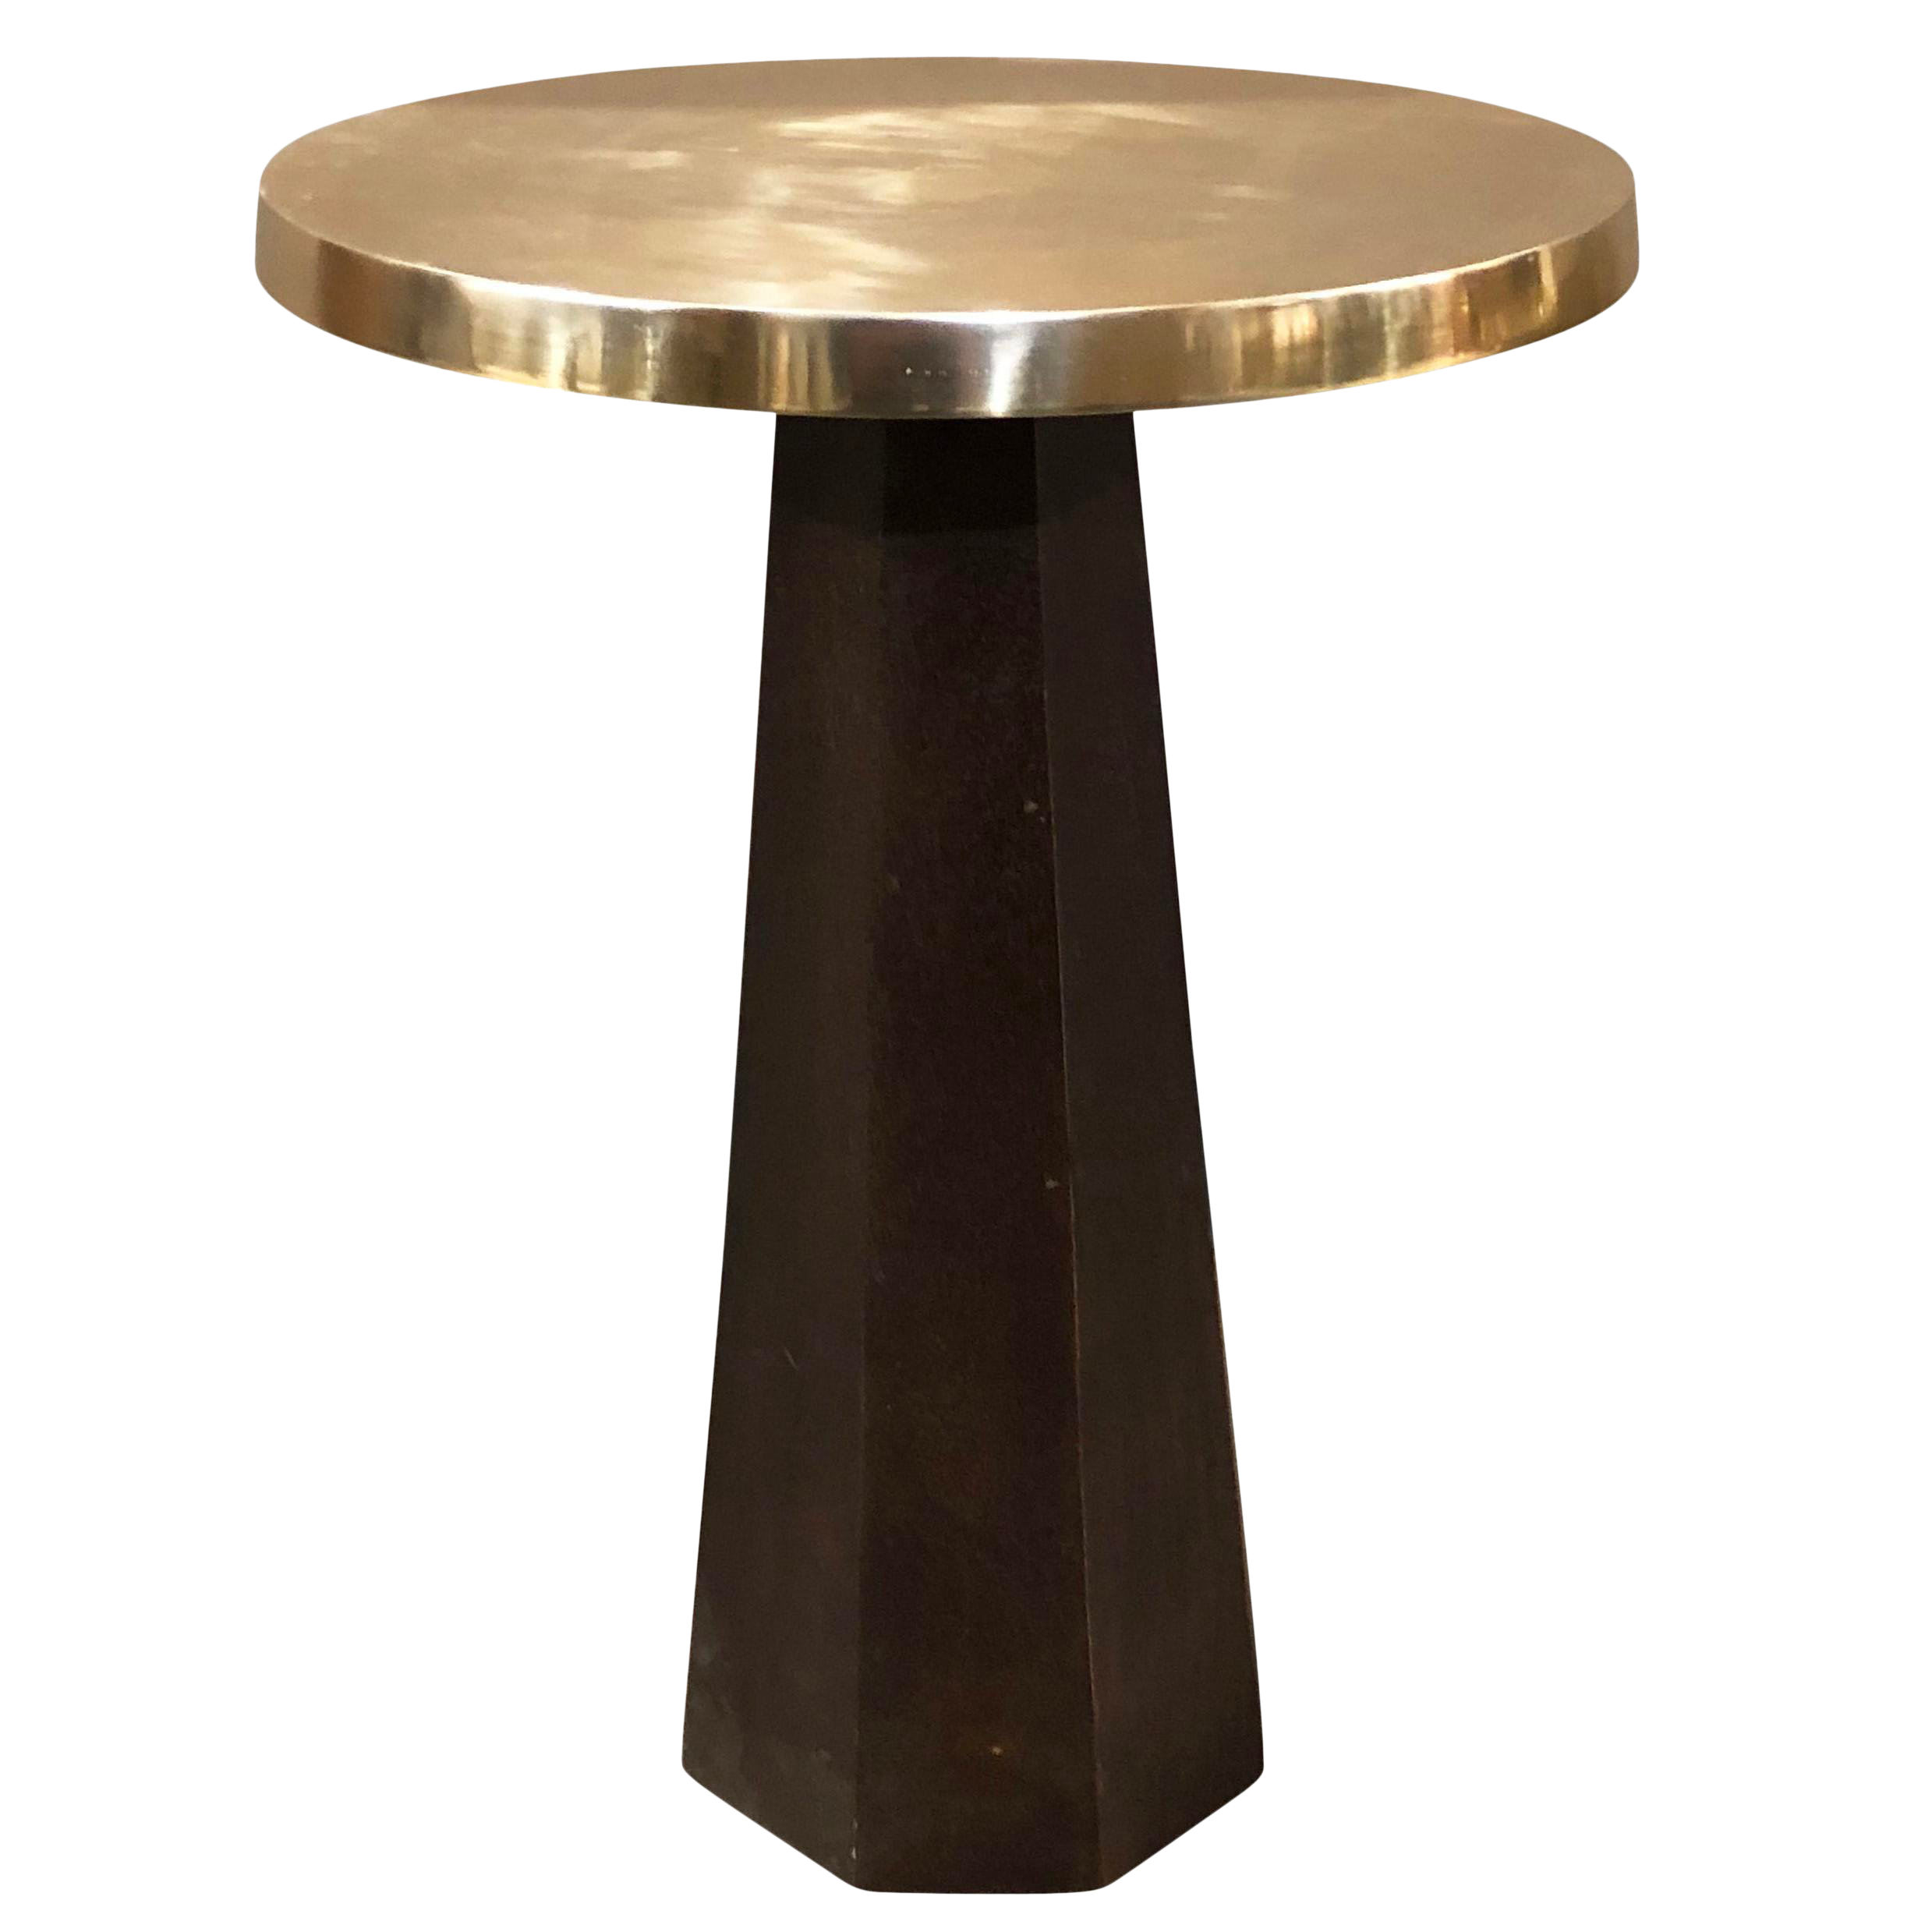 erdos home amy gold metal top accent table chairish pedestal black cube end modern round dining shaker adjustable furniture feet nesting tables wood target nest hairpin legs